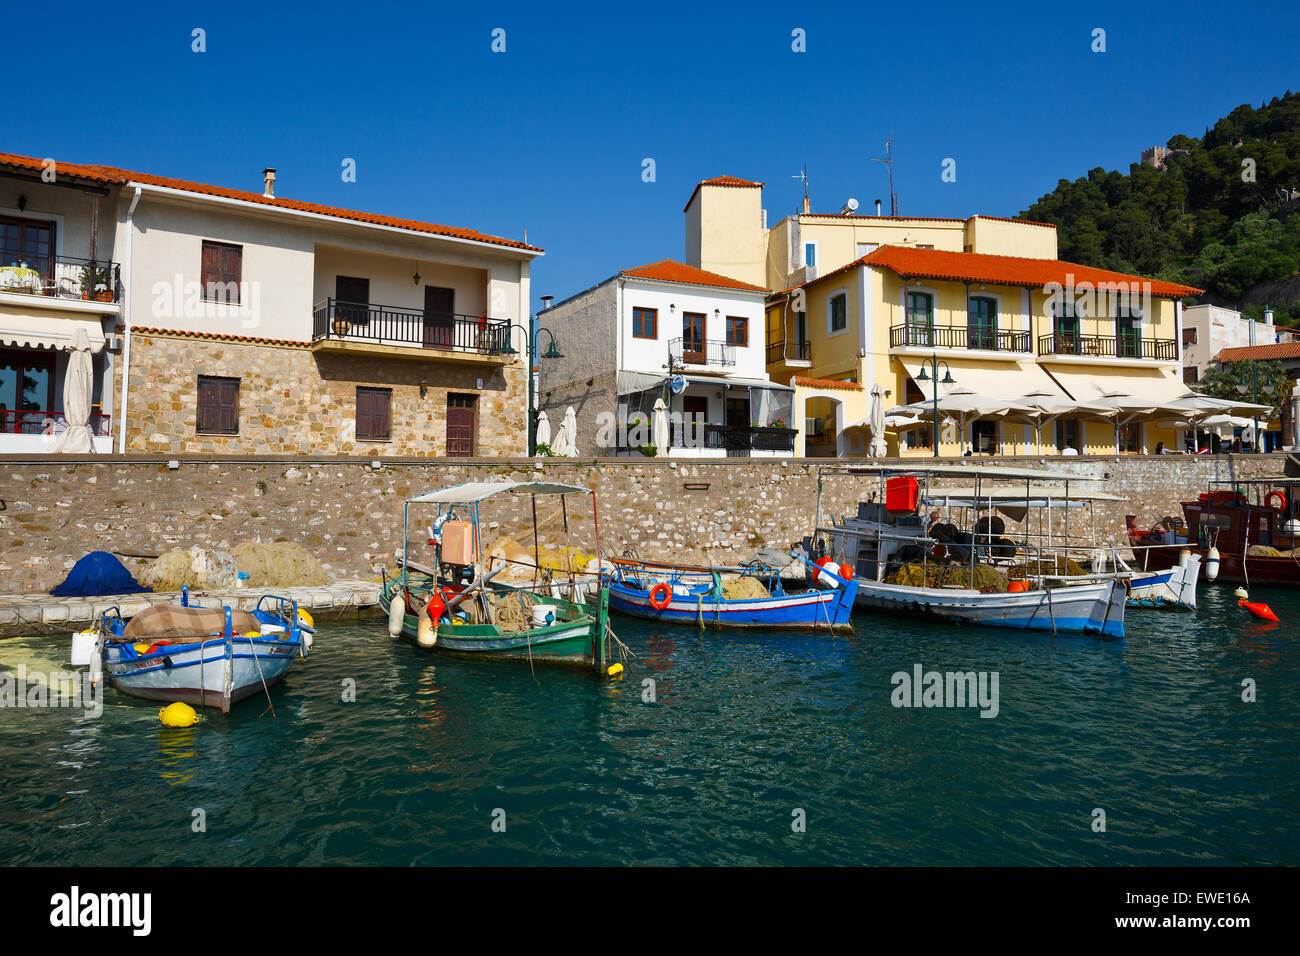 Boats in the harbour of Nafpaktos, Greece - Stock Image